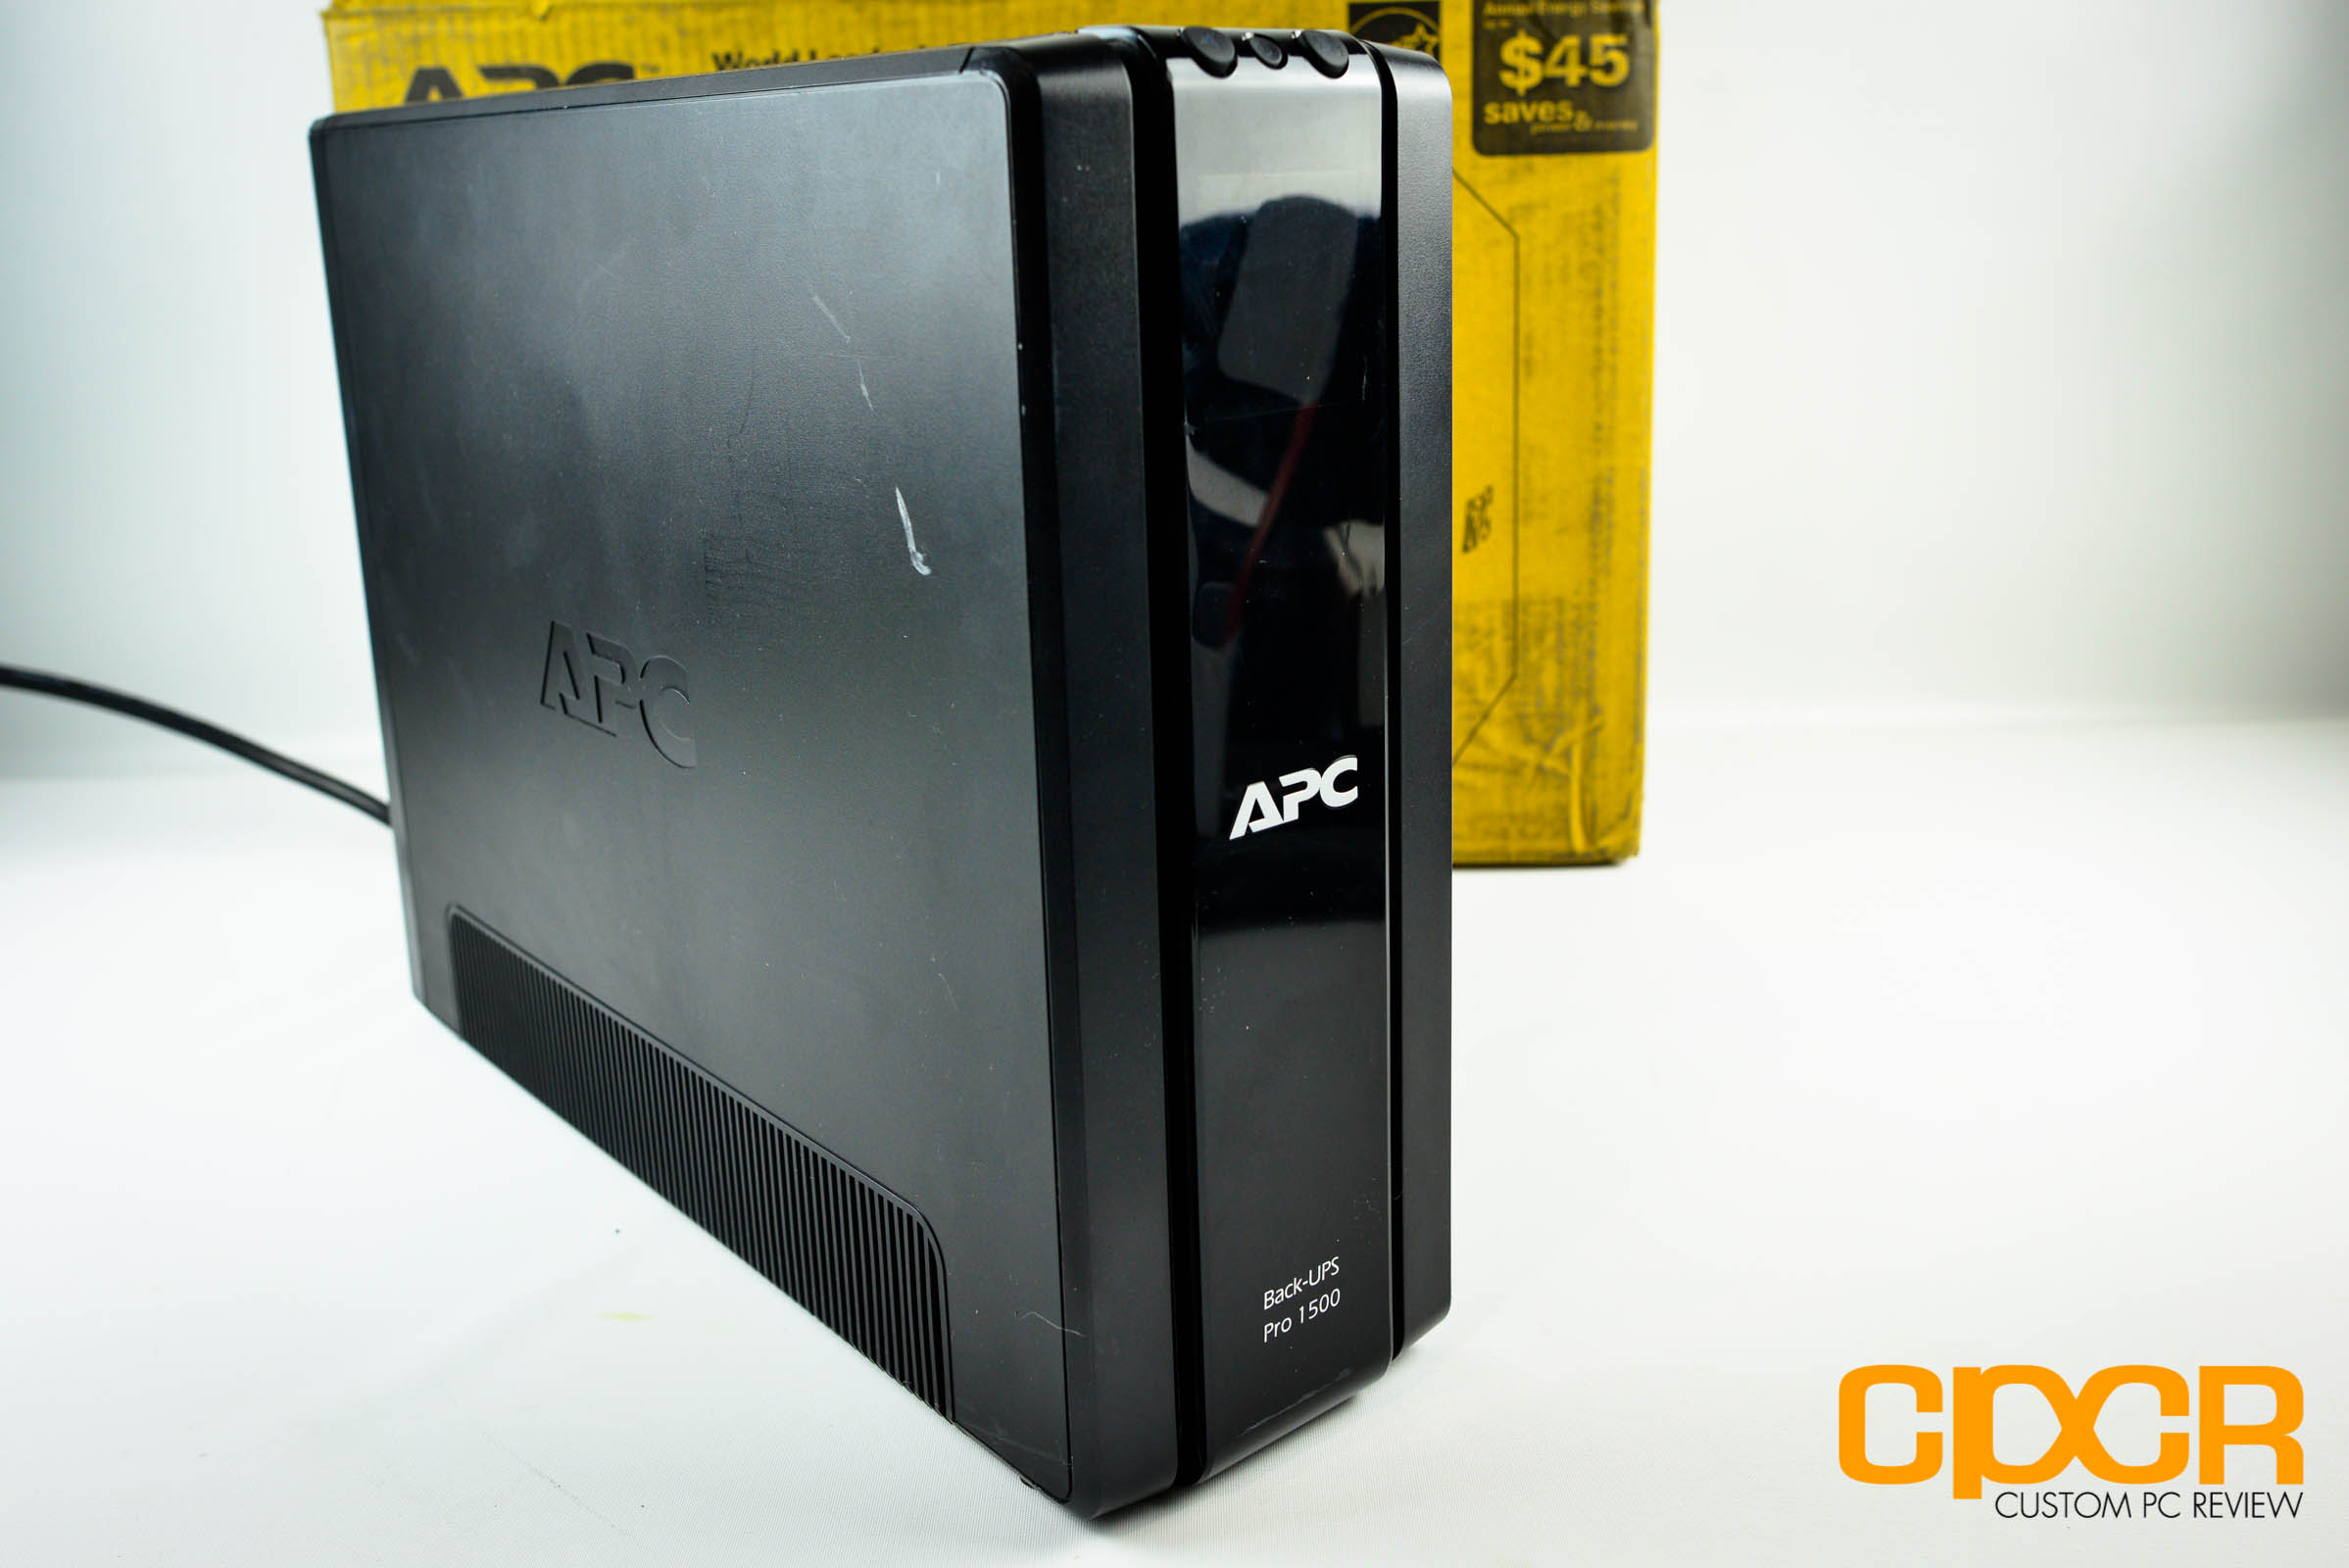 apc-power-saving-back-ups-pro-1500-ups-custom-pc-review-46